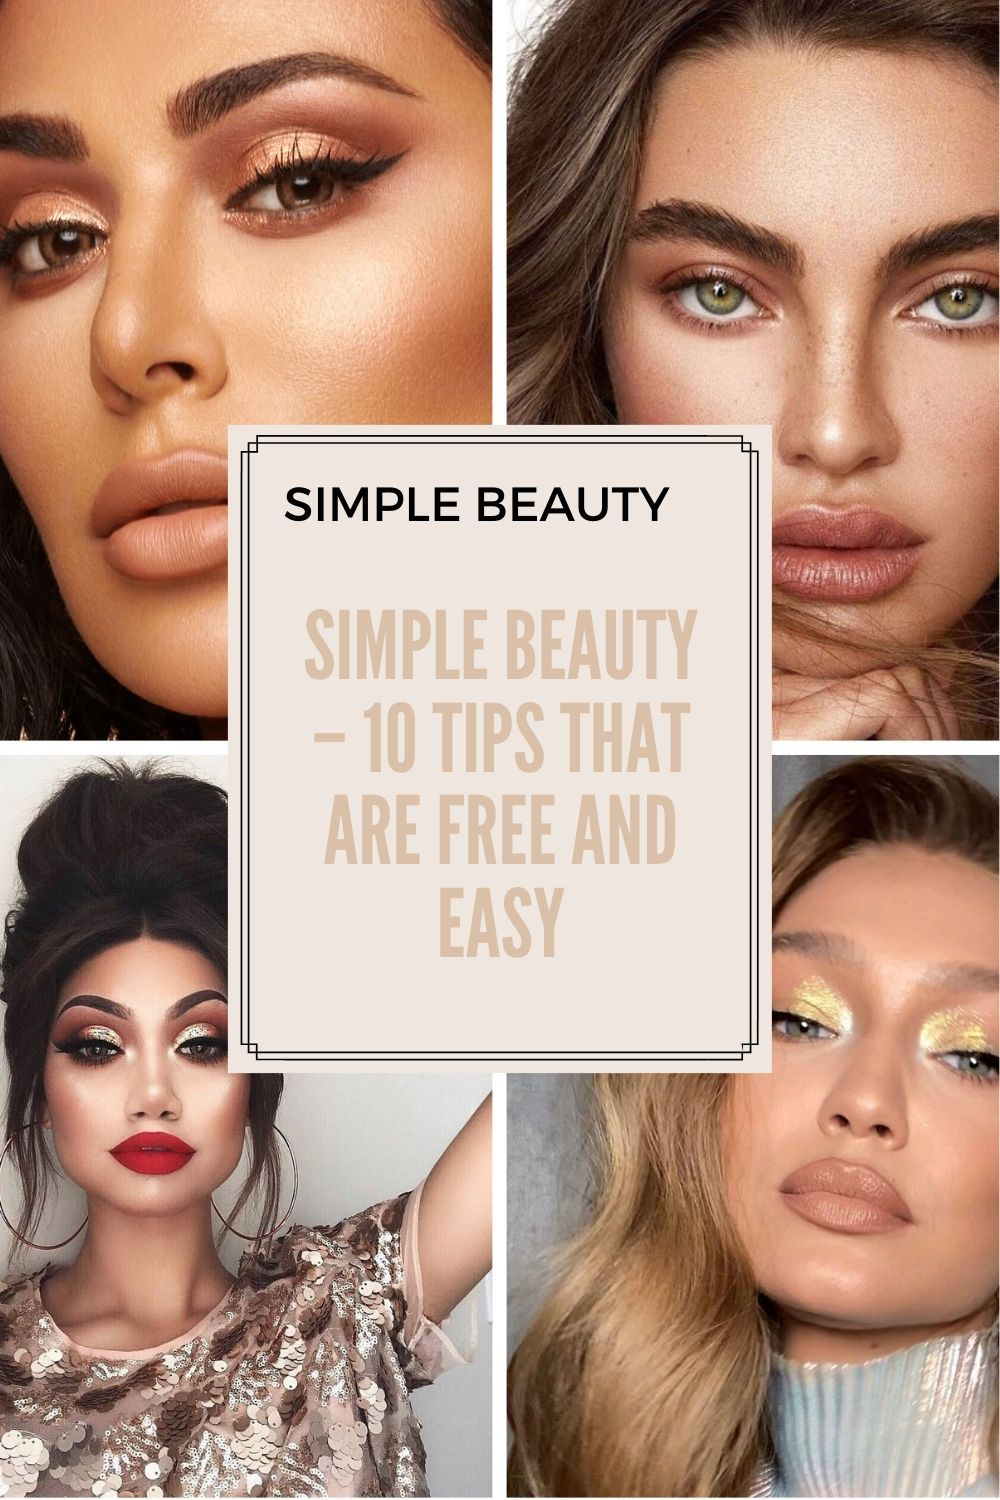 Simple Beauty 10 Tips That Are Free And Easy In 2020 Makeup Tips Eyeshadow Big Eyes Makeup Under Eye Makeup